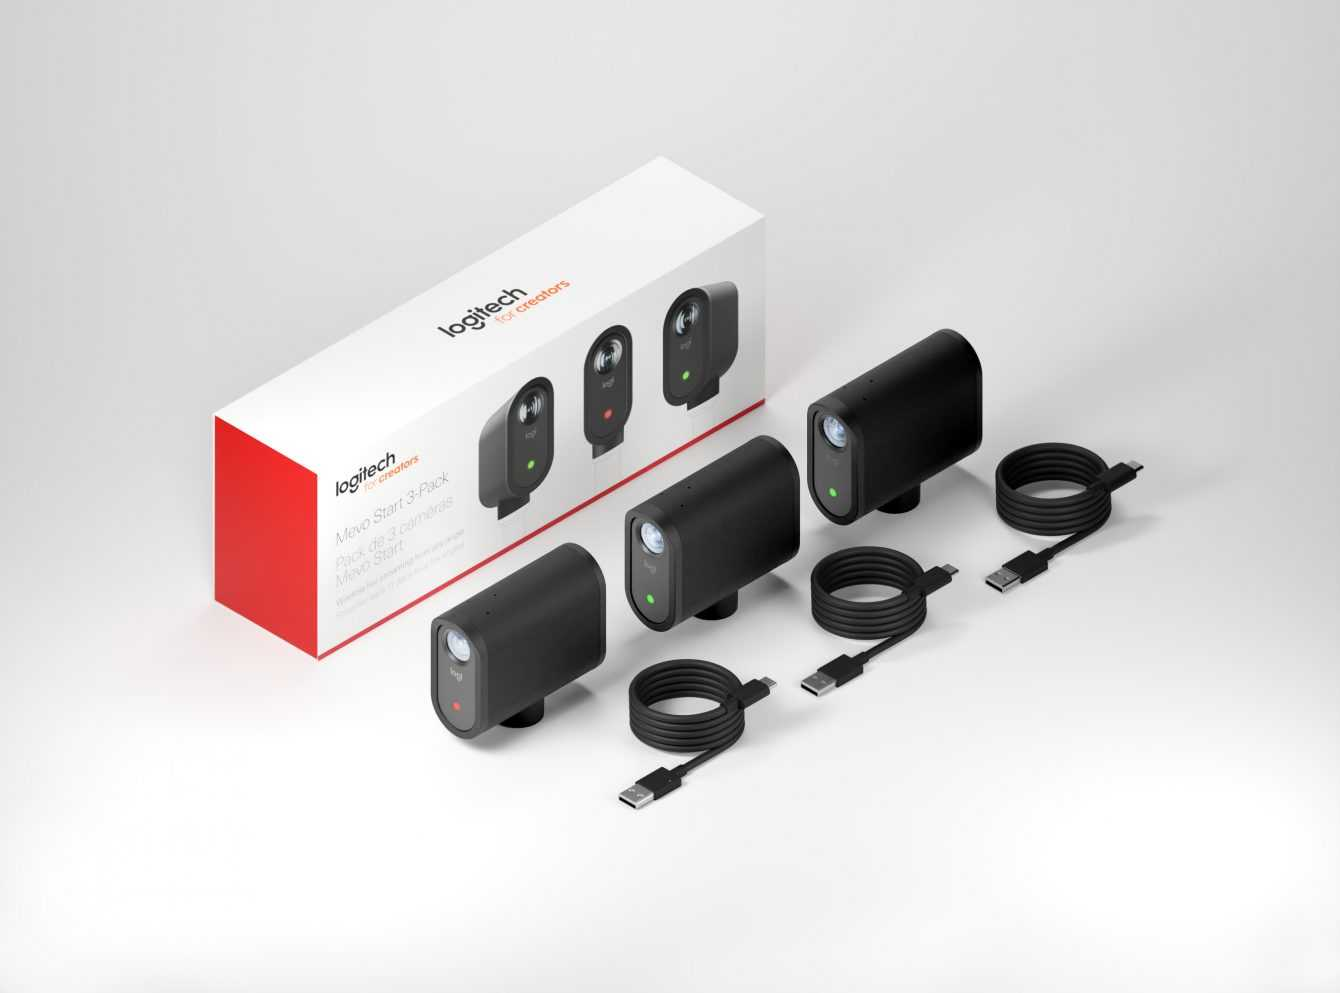 Logitech: the Mevo Cam arrives to excel at the highest quality